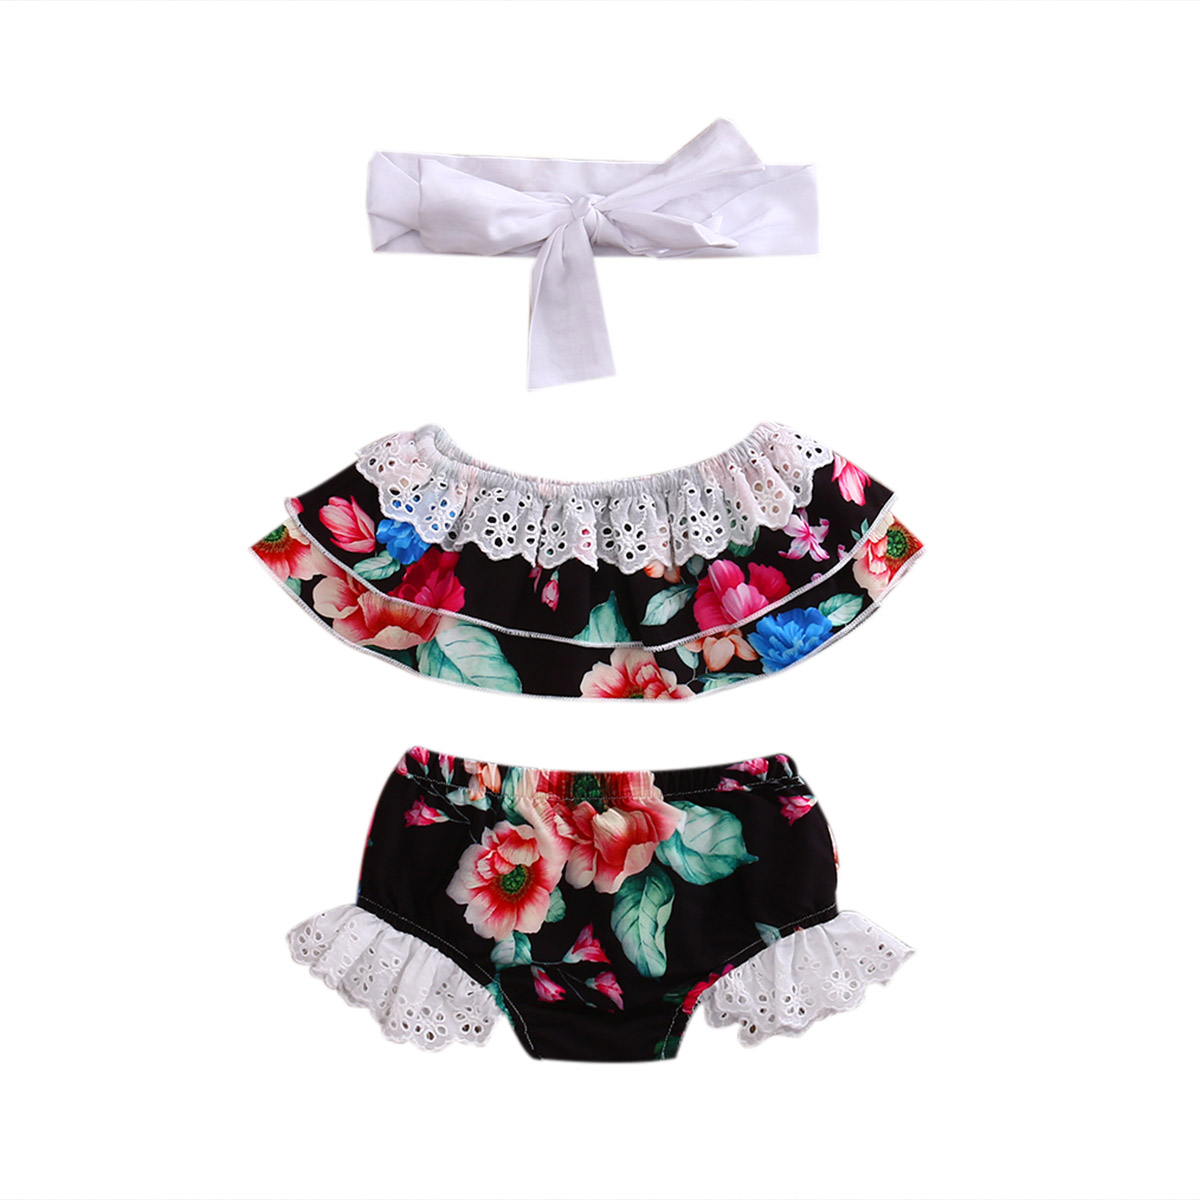 3pcs Sets Newborn Baby Girls Clothes Lace Floral Vest T-shirts Tops+Shorts Pants+Headband Toddler Girls Cute Summer Cotton Suits